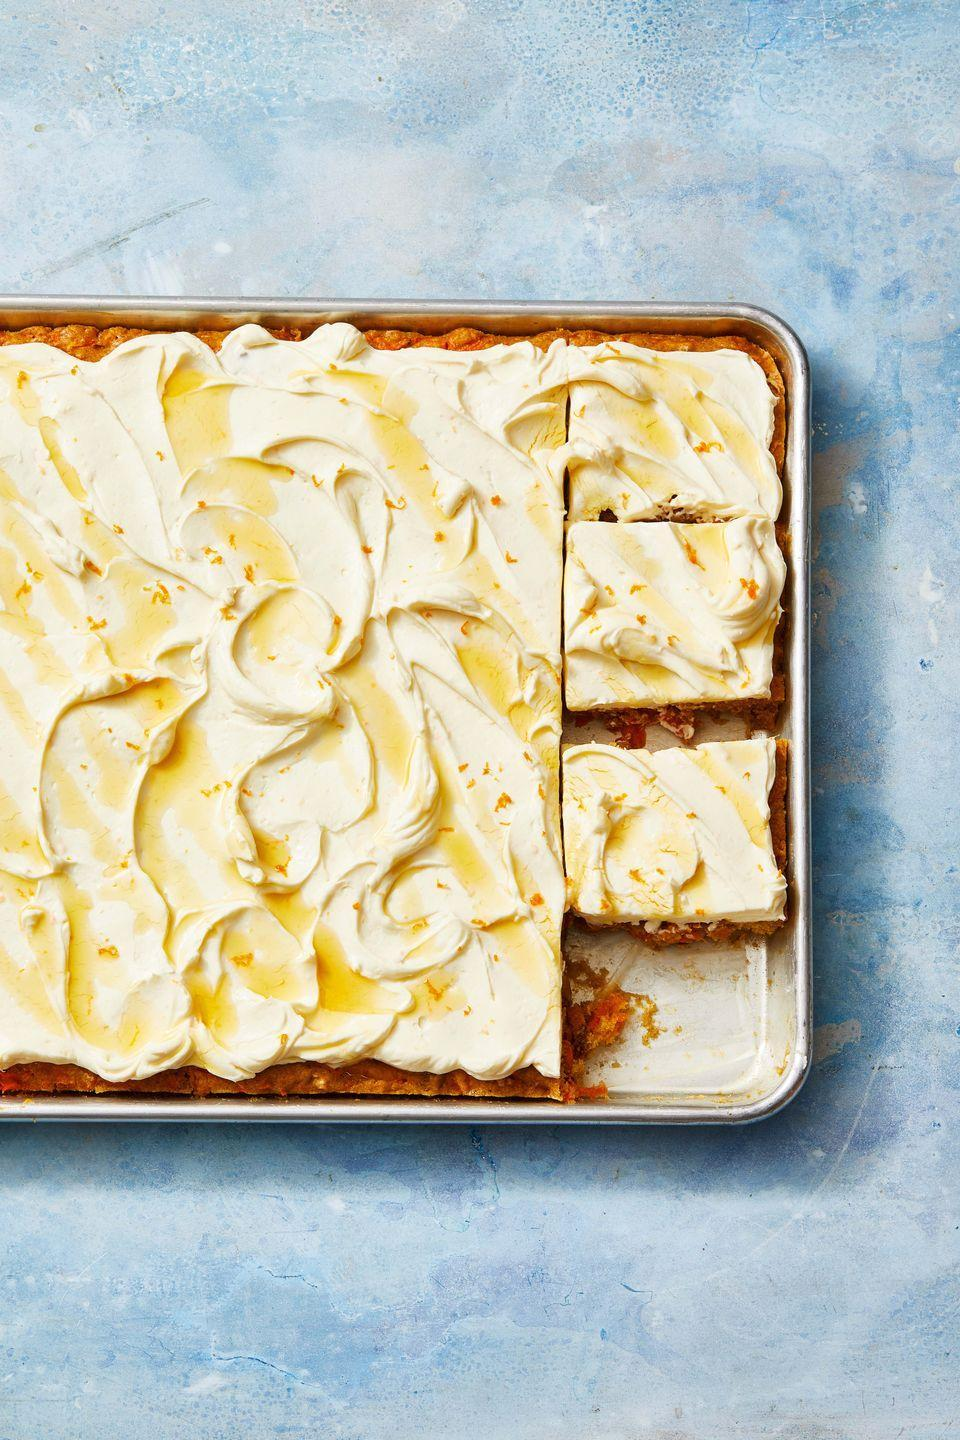 """<p>Carrot cake isn't just for Easter! If this is dad's favorite, you can make it for any holiday.</p><p><em><a href=""""https://www.goodhousekeeping.com/food-recipes/dessert/a30996763/carrot-sheet-cake-recipe/"""" rel=""""nofollow noopener"""" target=""""_blank"""" data-ylk=""""slk:Get the recipe for Carrot Sheet Cake With Cream Cheese Frosting »"""" class=""""link rapid-noclick-resp"""">Get the recipe for Carrot Sheet Cake With Cream Cheese Frosting »</a></em></p><p><strong>RELATED: </strong><a href=""""https://www.goodhousekeeping.com/holidays/easter-ideas/g4156/easter-cakes/"""" rel=""""nofollow noopener"""" target=""""_blank"""" data-ylk=""""slk:45 Beautiful Easter Cakes That Anyone Can Make"""" class=""""link rapid-noclick-resp"""">45 Beautiful Easter Cakes That Anyone Can Make</a></p>"""